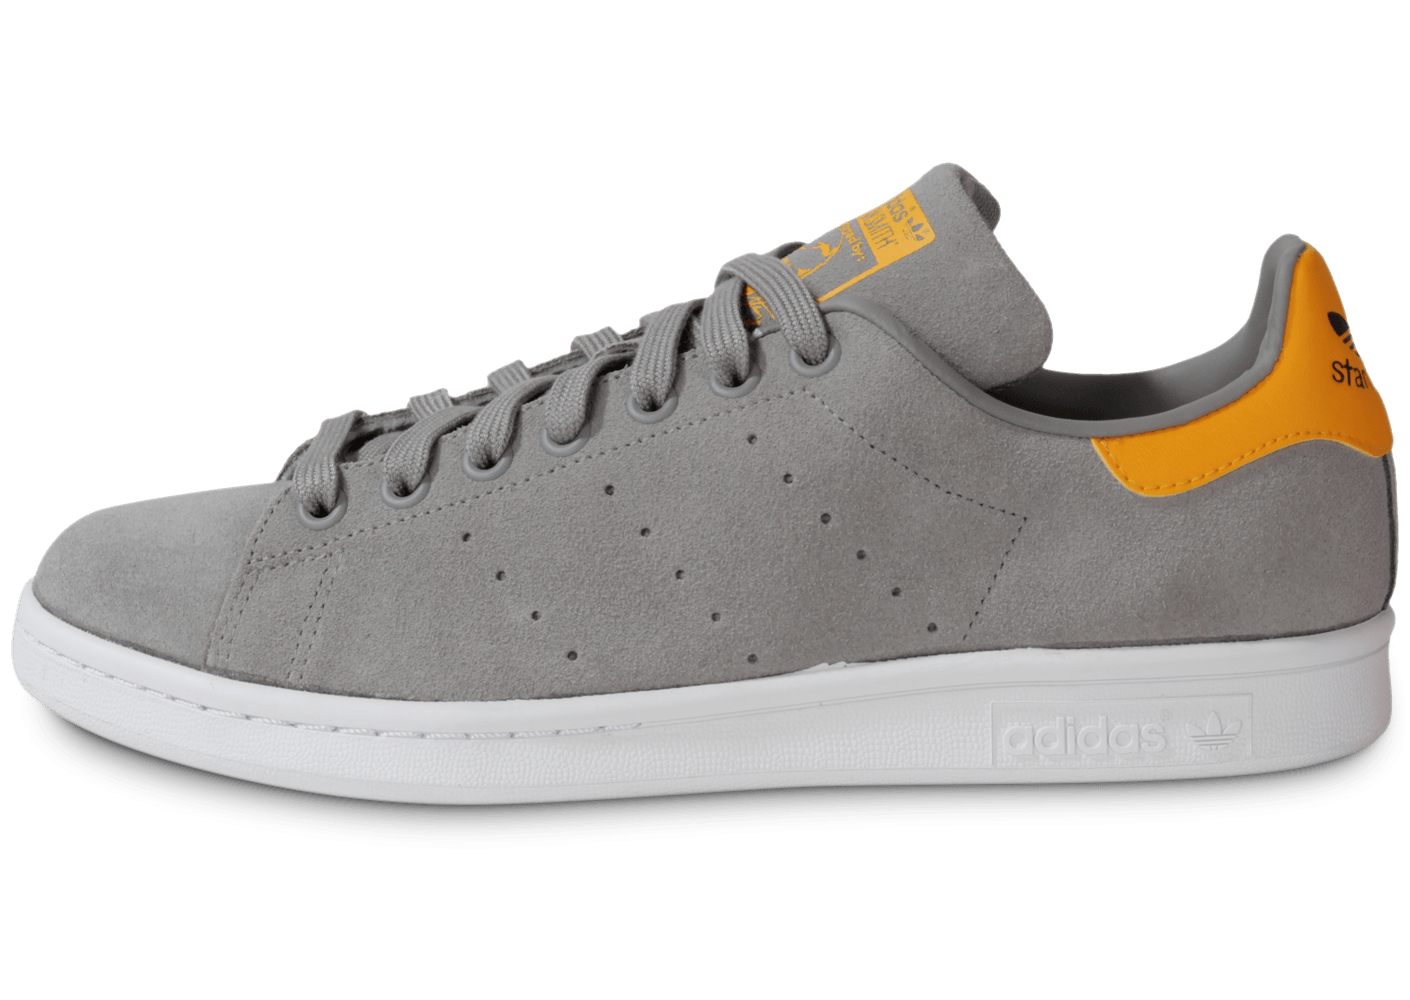 adidas stan smith grise gold chaussures homme chausport. Black Bedroom Furniture Sets. Home Design Ideas